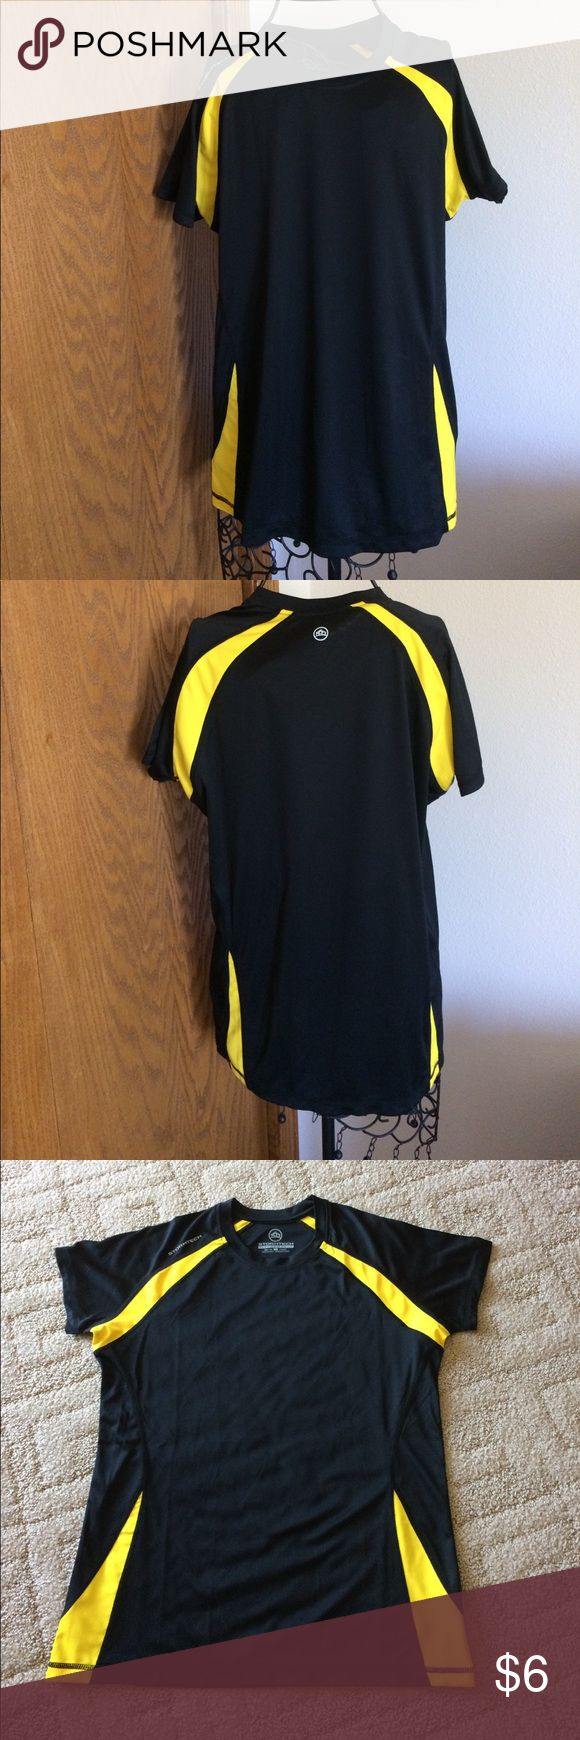 """Stormtech black & yellow short sleeve top Large Nice gently worn top of 100% polyester. Length 26"""", across front at underarm 21"""", hem width 39"""". Stretchy.No shoulder seams,has side seams. Stormtech Performance Tops Tees - Short Sleeve"""